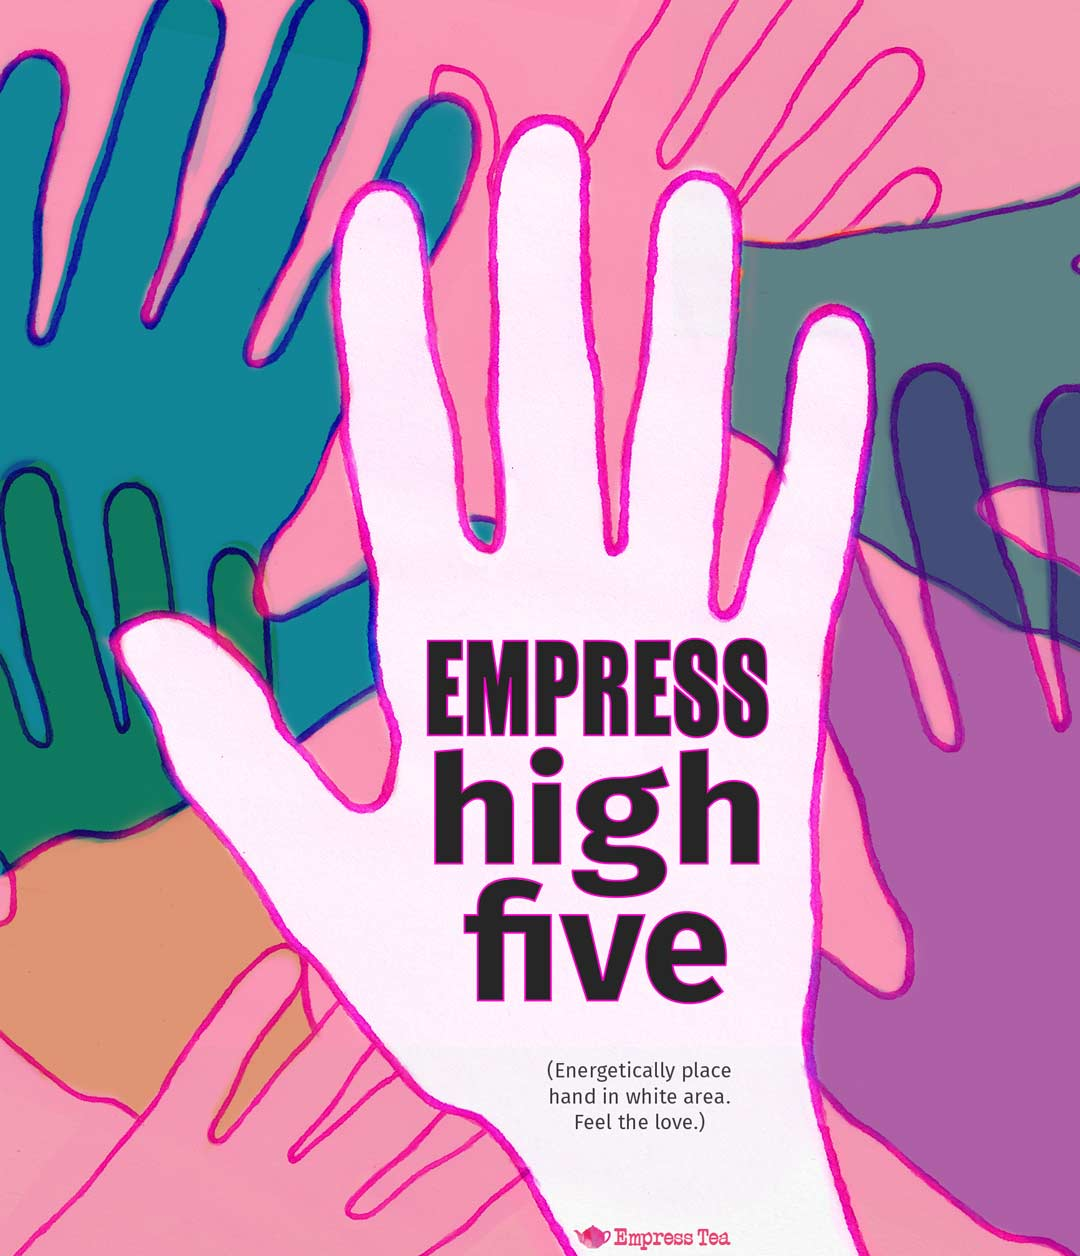 Empress Tea, high five, empress high five, 5th anniversary, hands